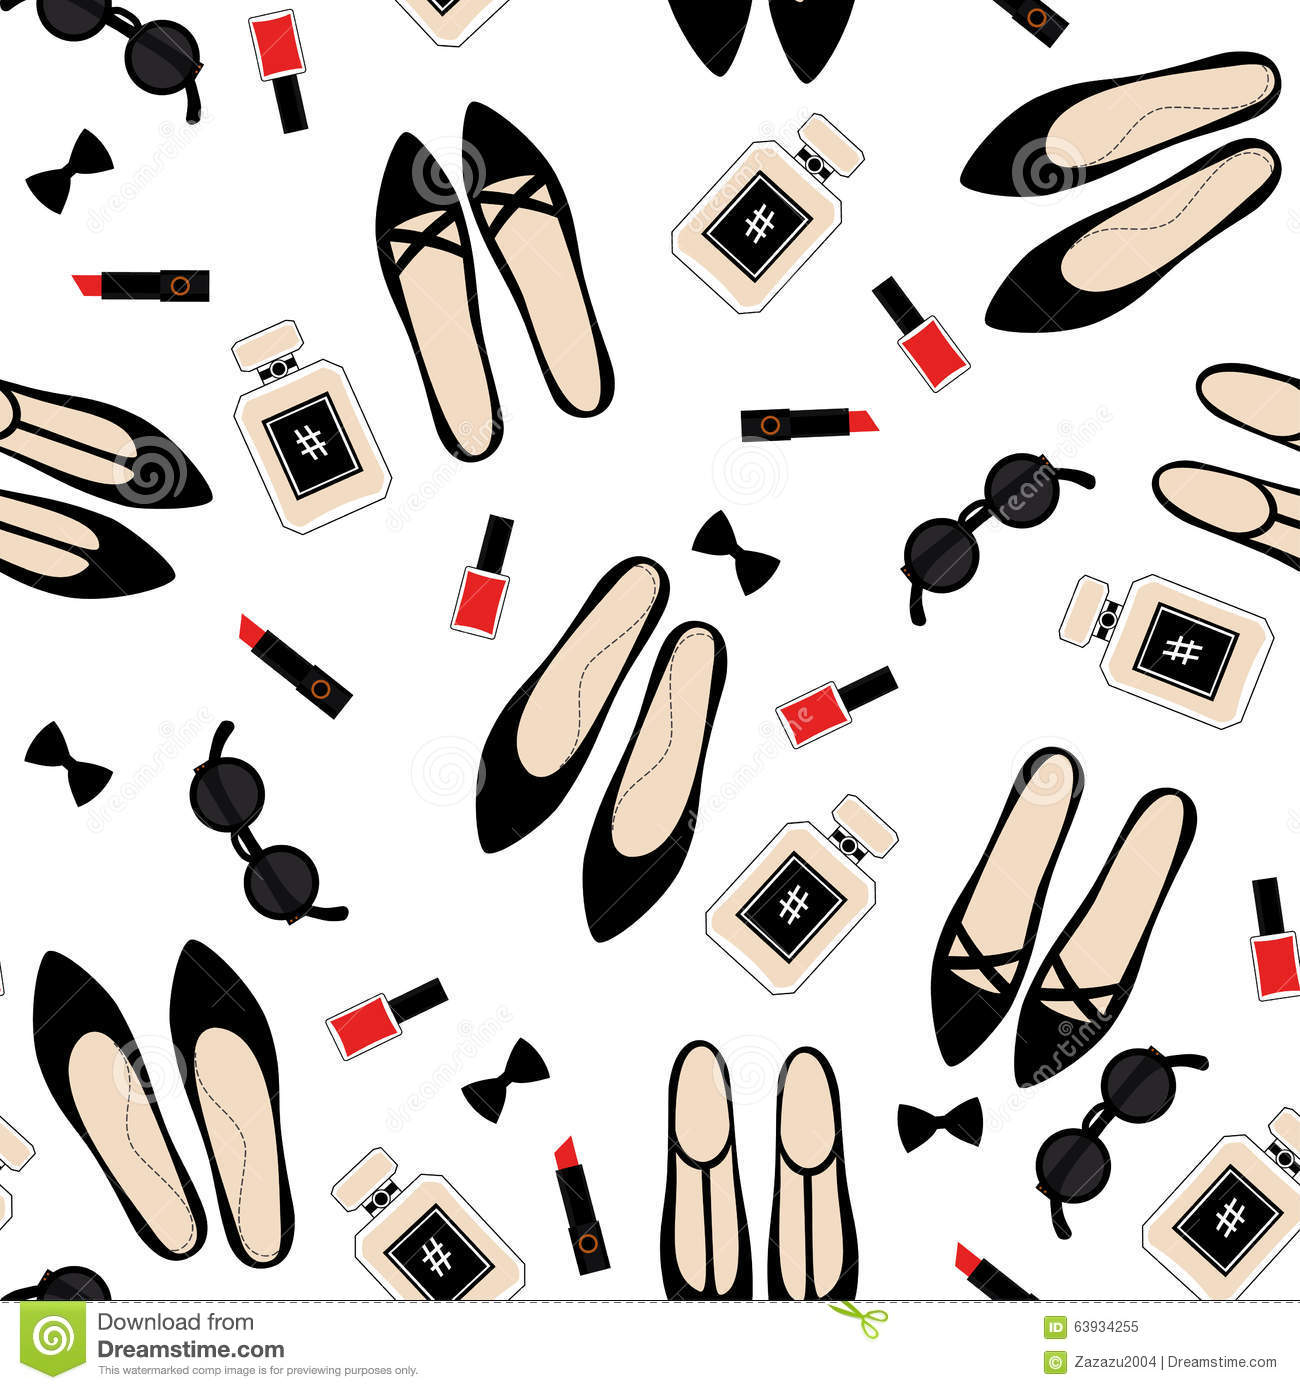 Fashionable Clothes Shoes Jeans Lipsticks Nail Polish: Seamless Fashion Accessories Pattern. Stock Vector